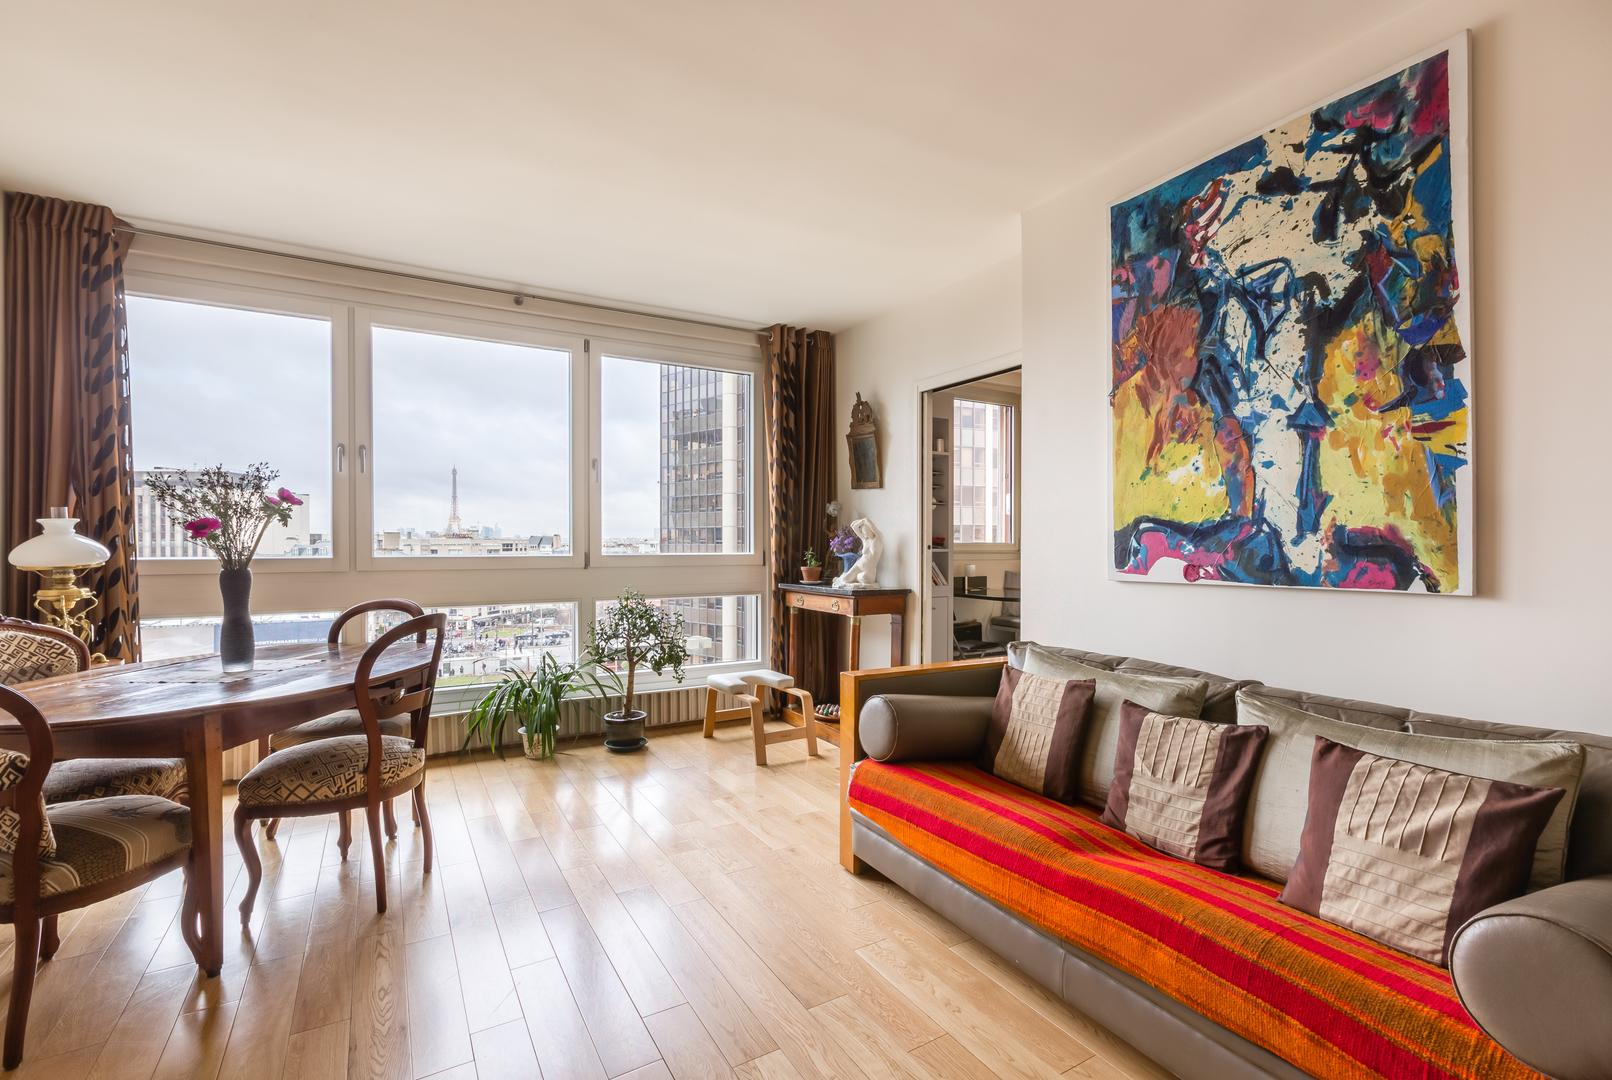 Property Image 1 - Exquisite Apartment Overlooking the Eiffel Tower